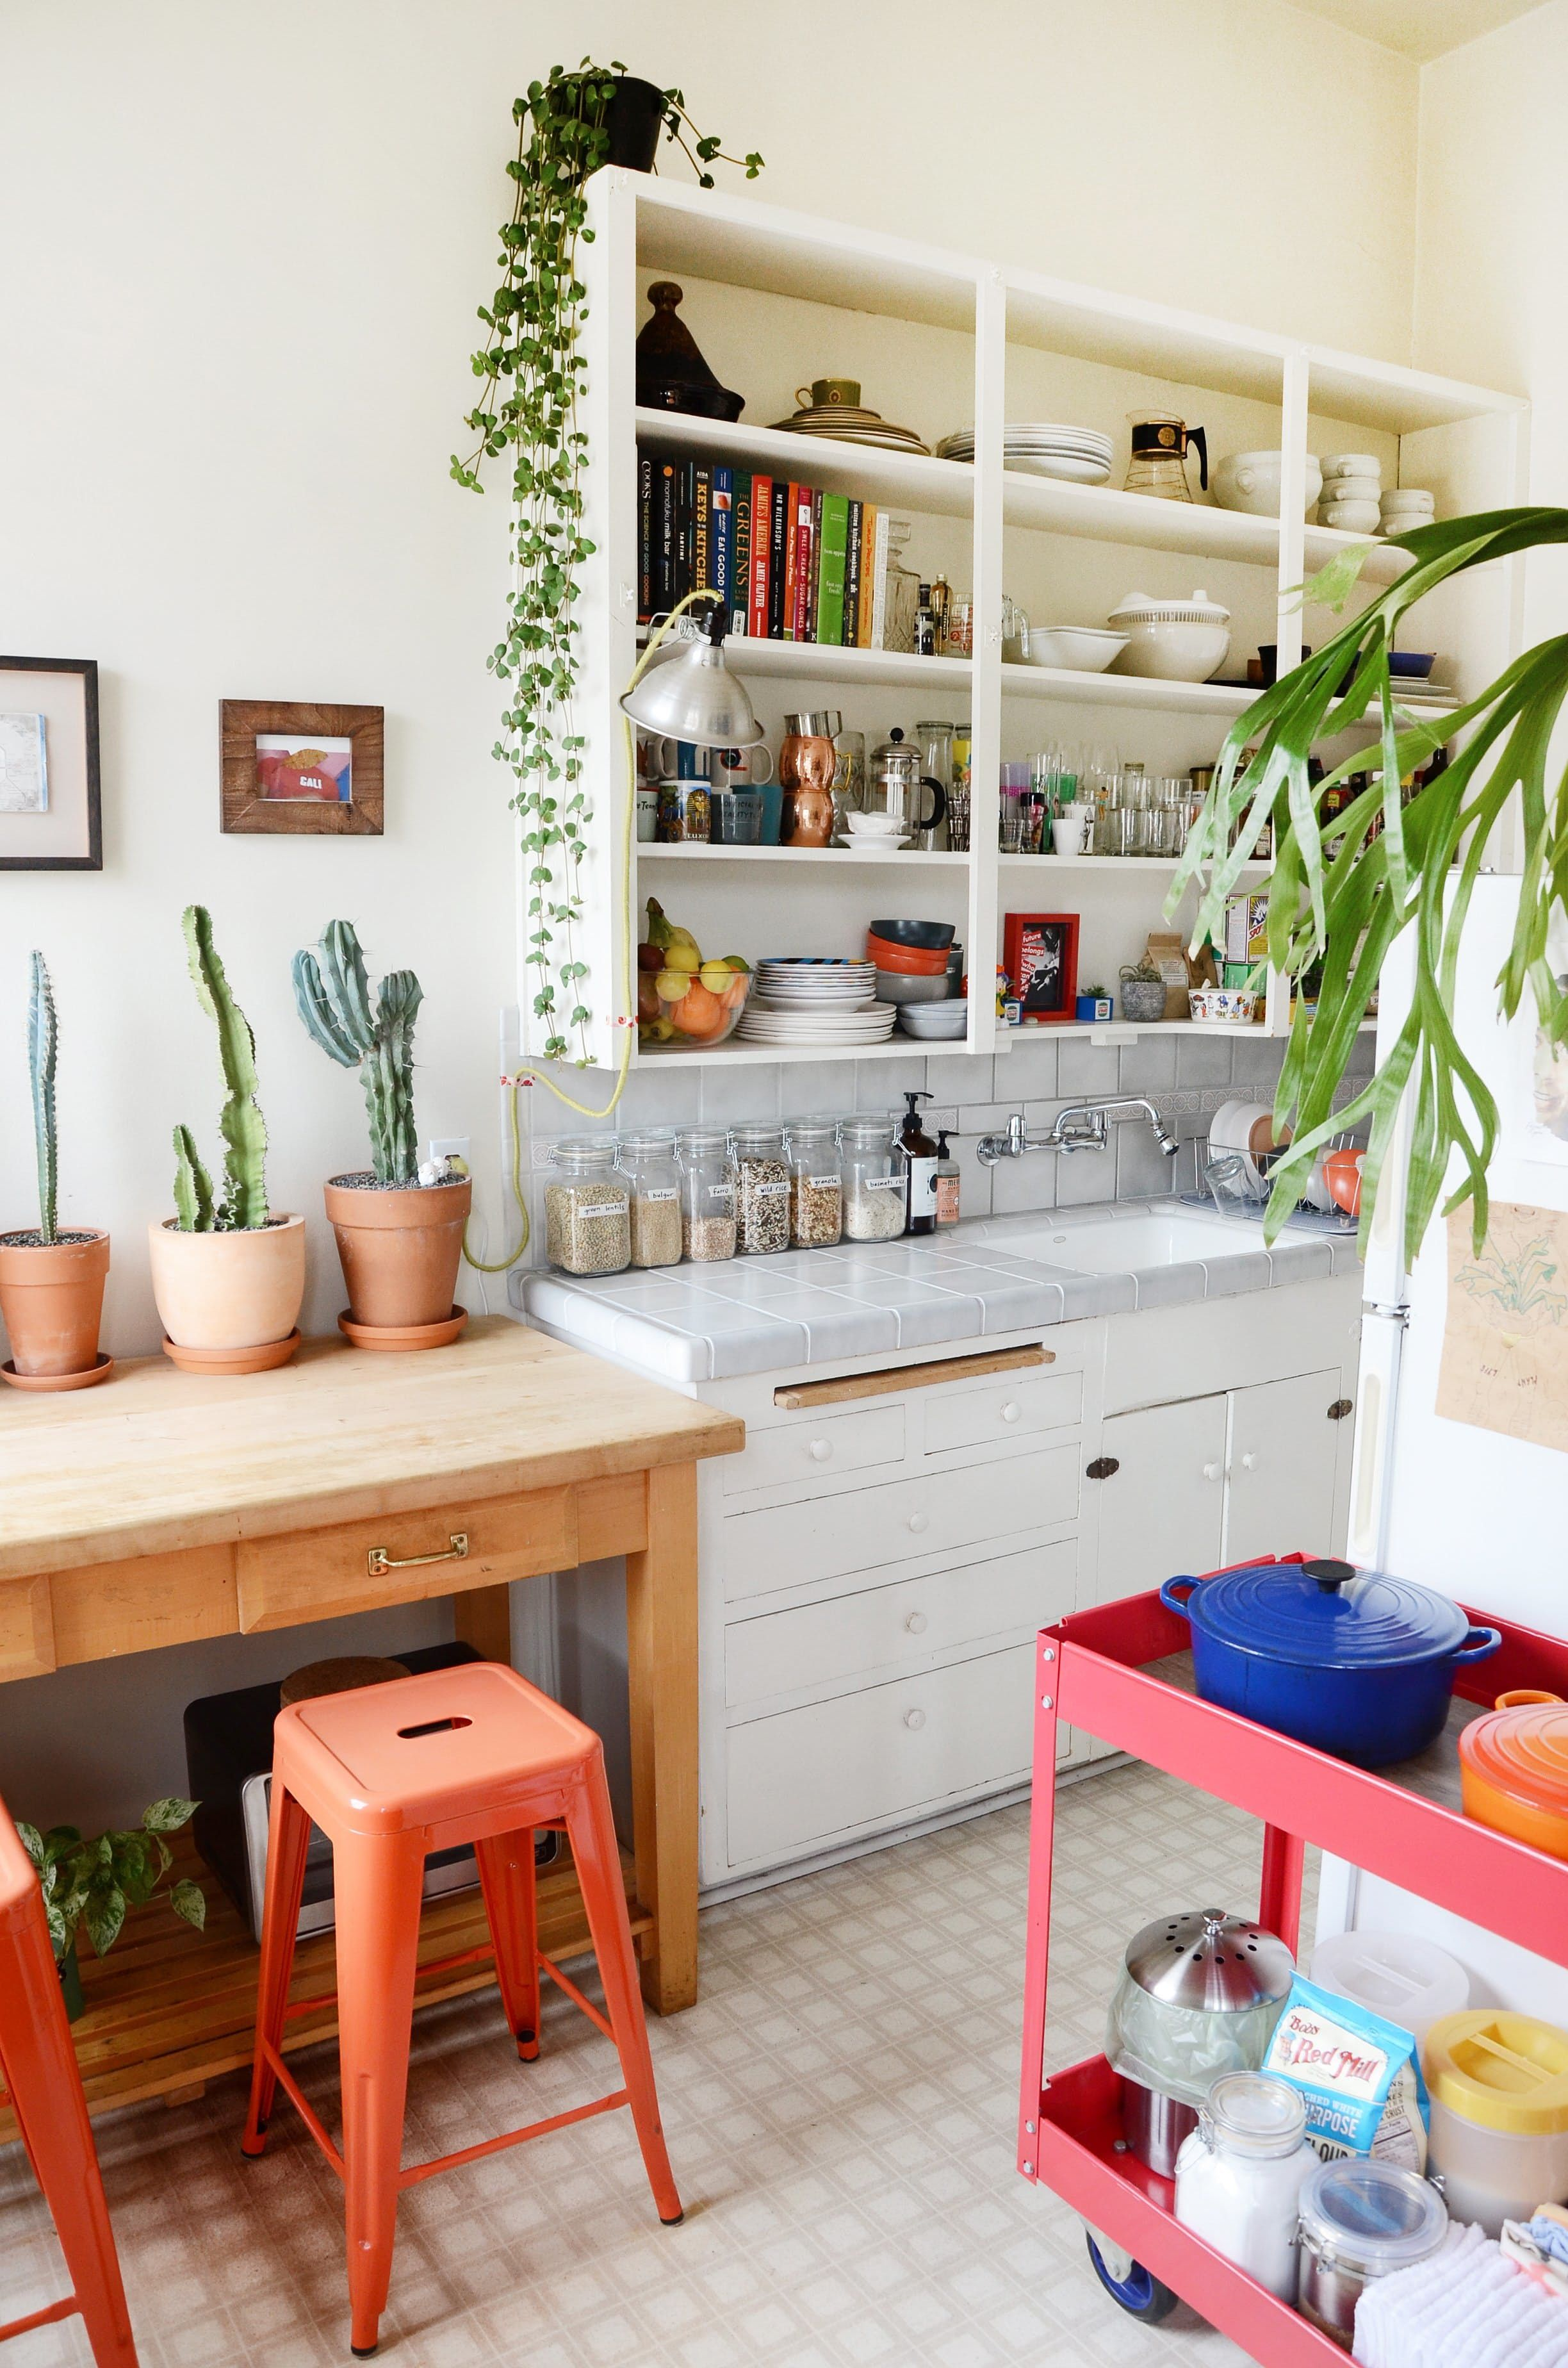 Home sweet home simple ways to make your kitchen cozier kitchen